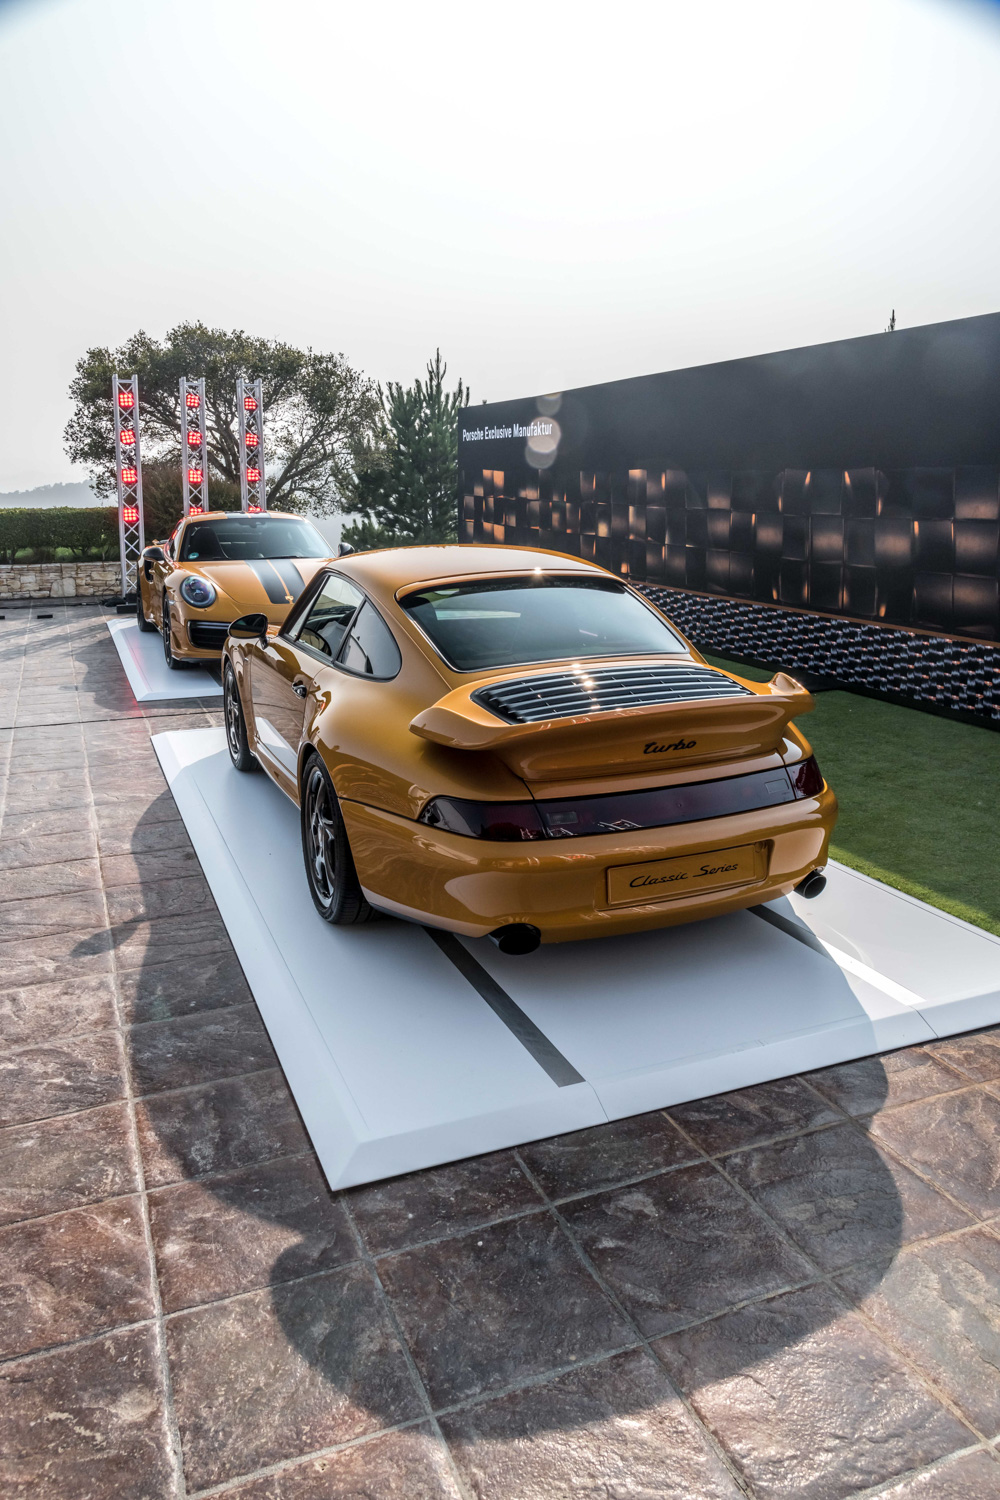 Porsche Project Gold classic series